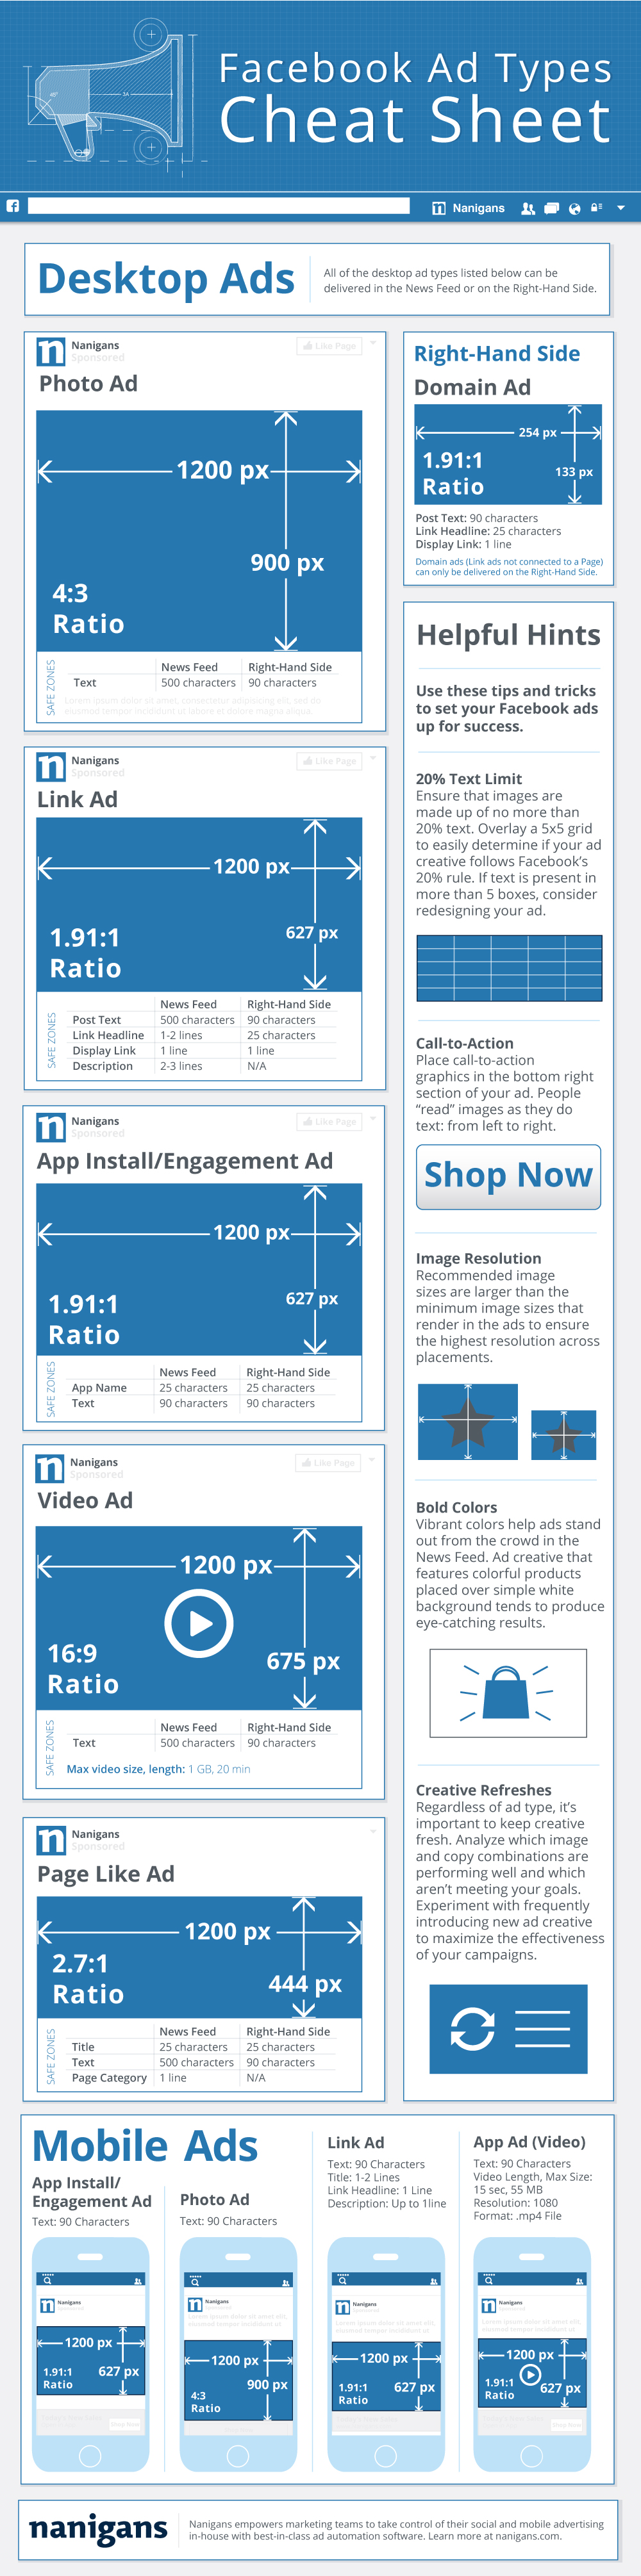 Facebook-Ad-Types-Infographic